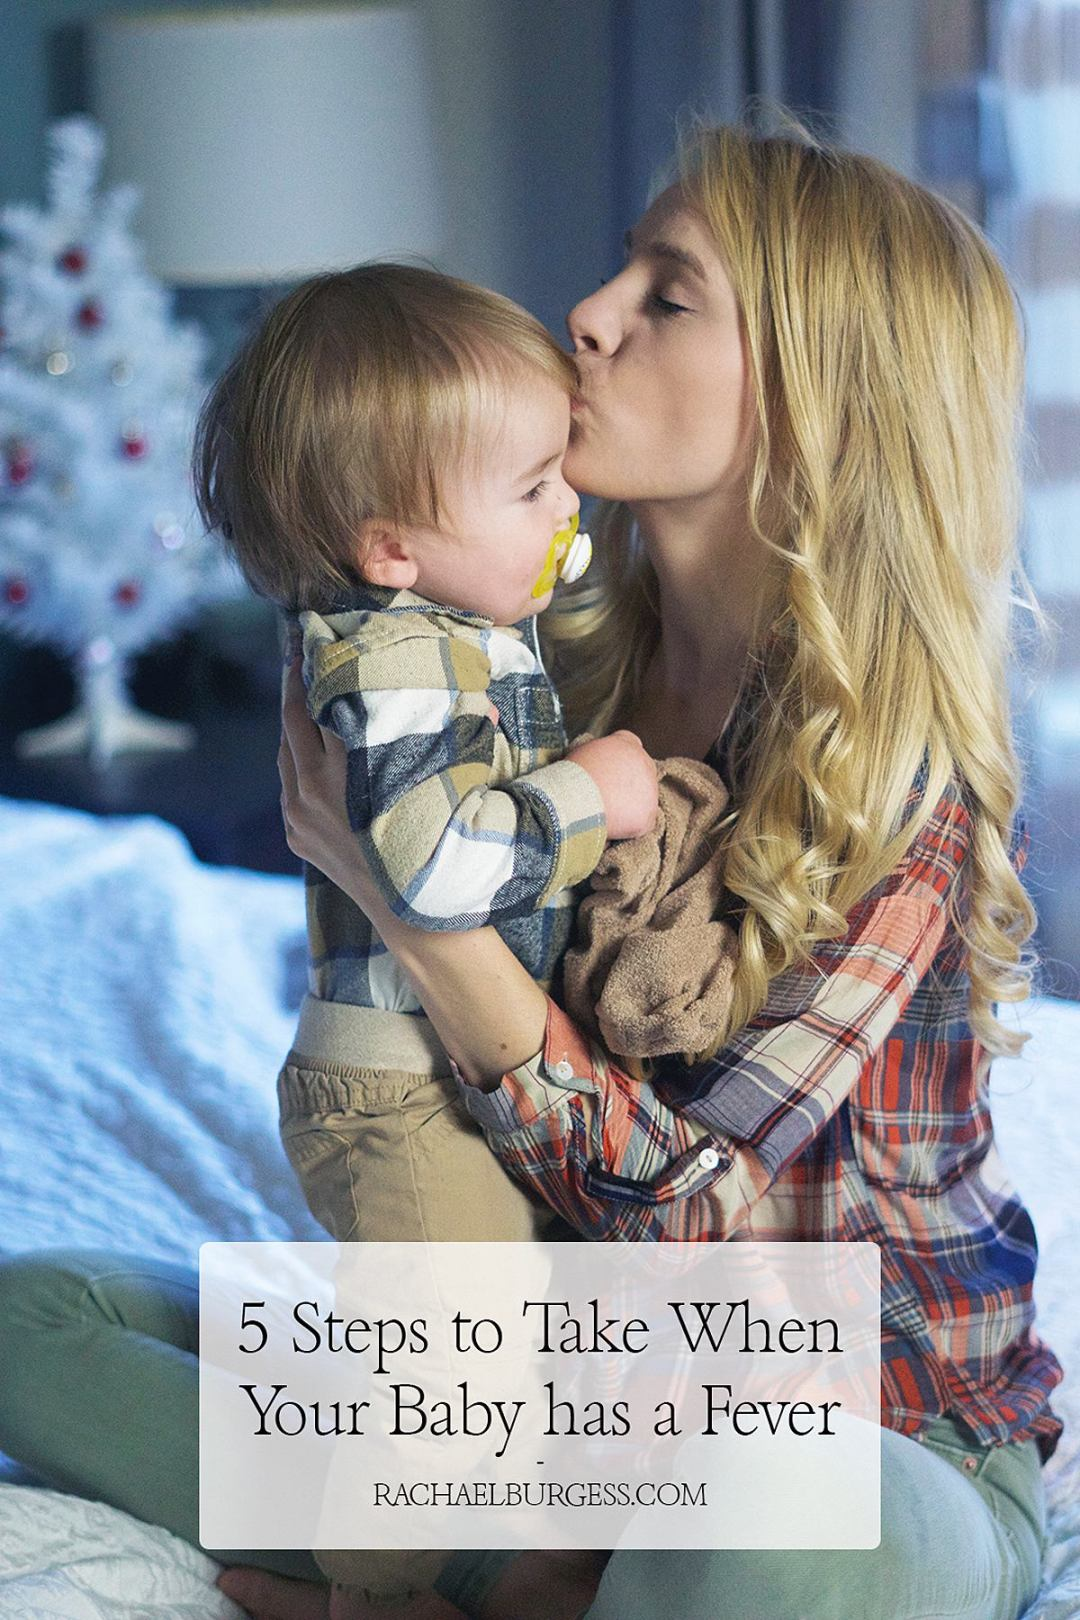 5 Steps to Take When Baby has a Fever   Rachael Burgess